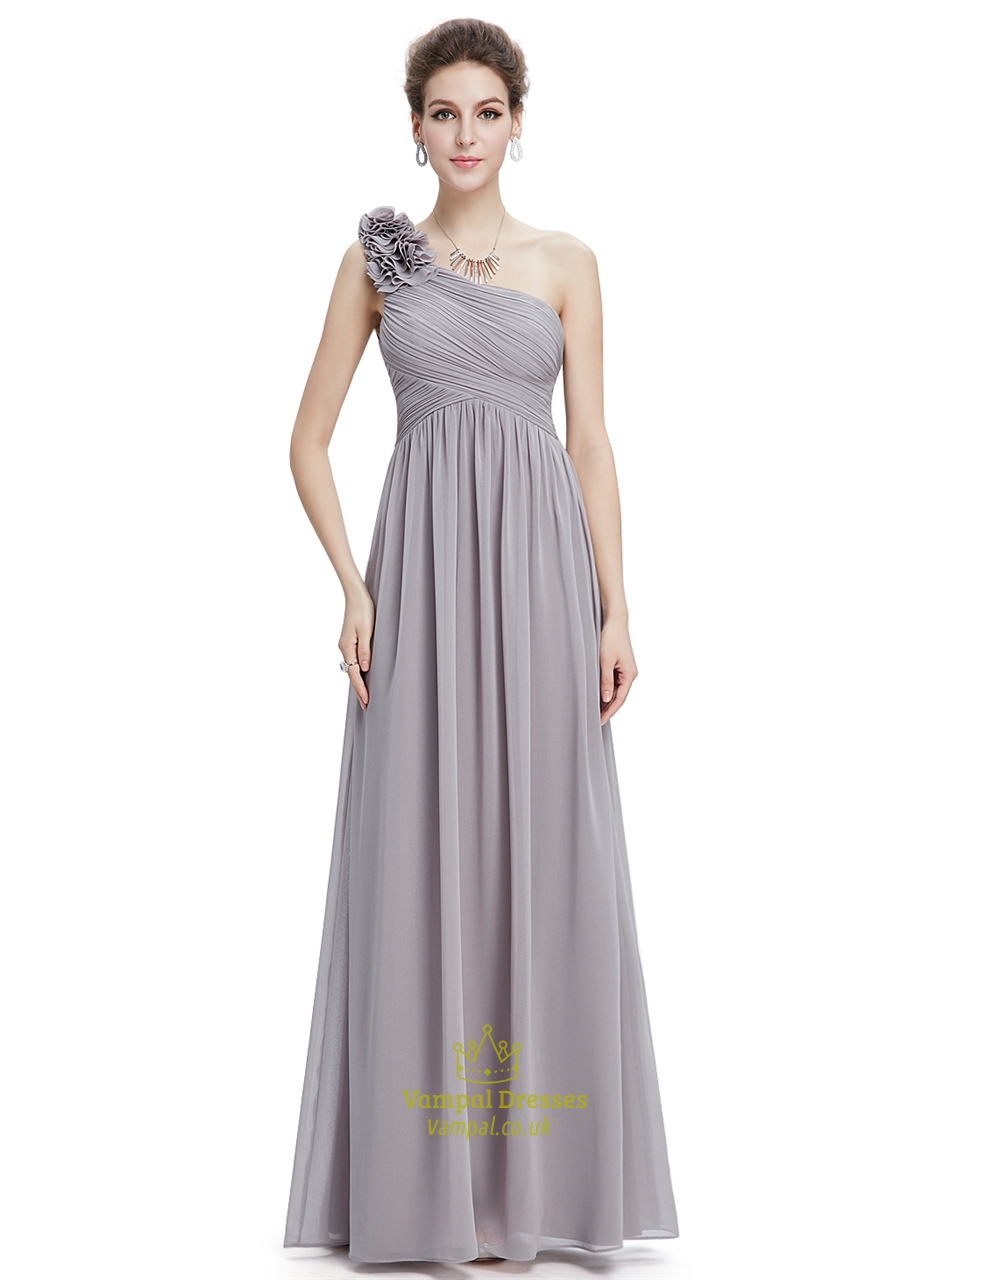 Grey chiffon one shoulder flower strap long bridesmaid dress grey chiffon one shoulder flower strap long bridesmaid dress ombrellifo Image collections